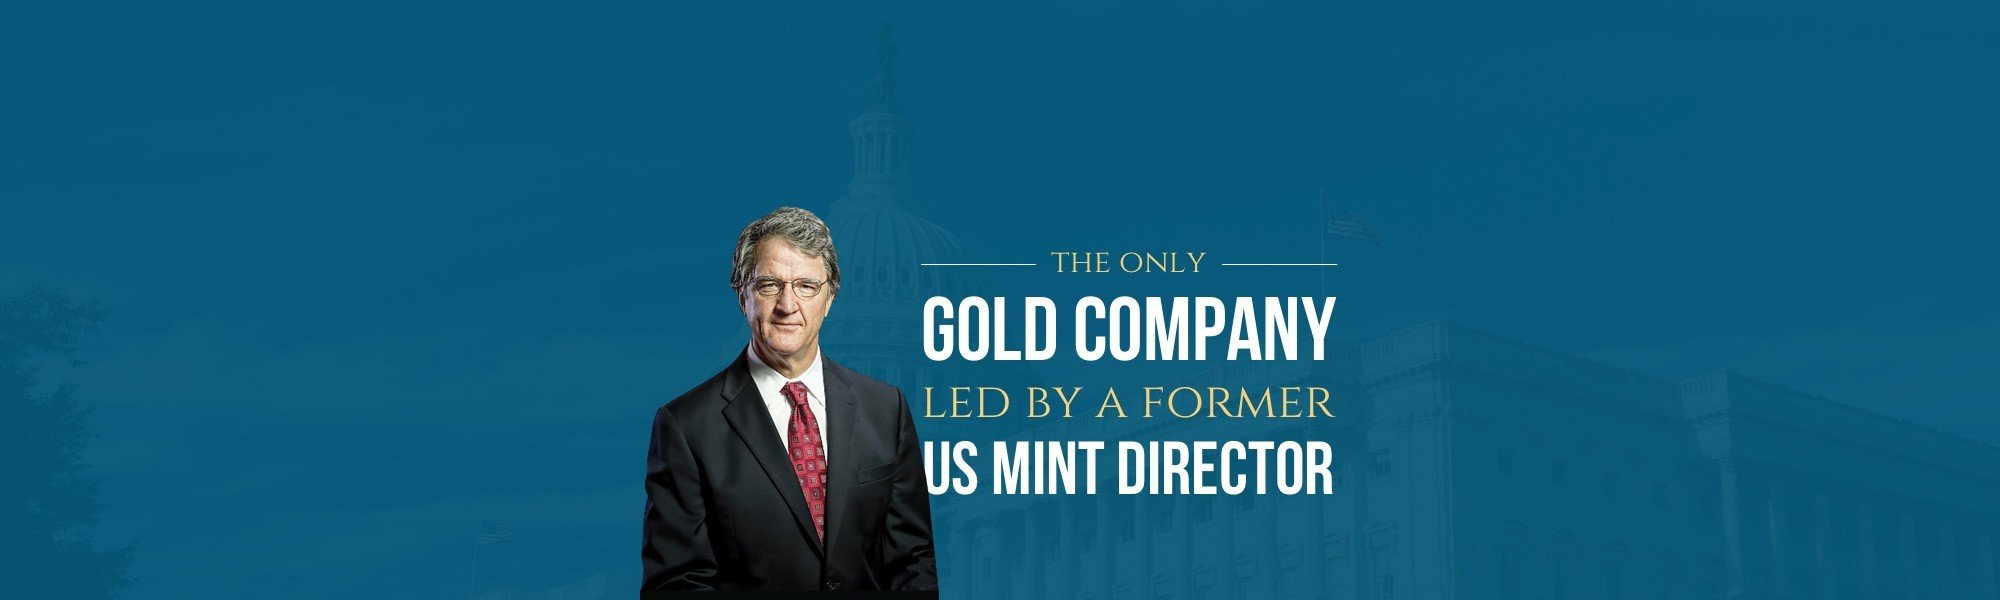 gold company lef by former US mint director